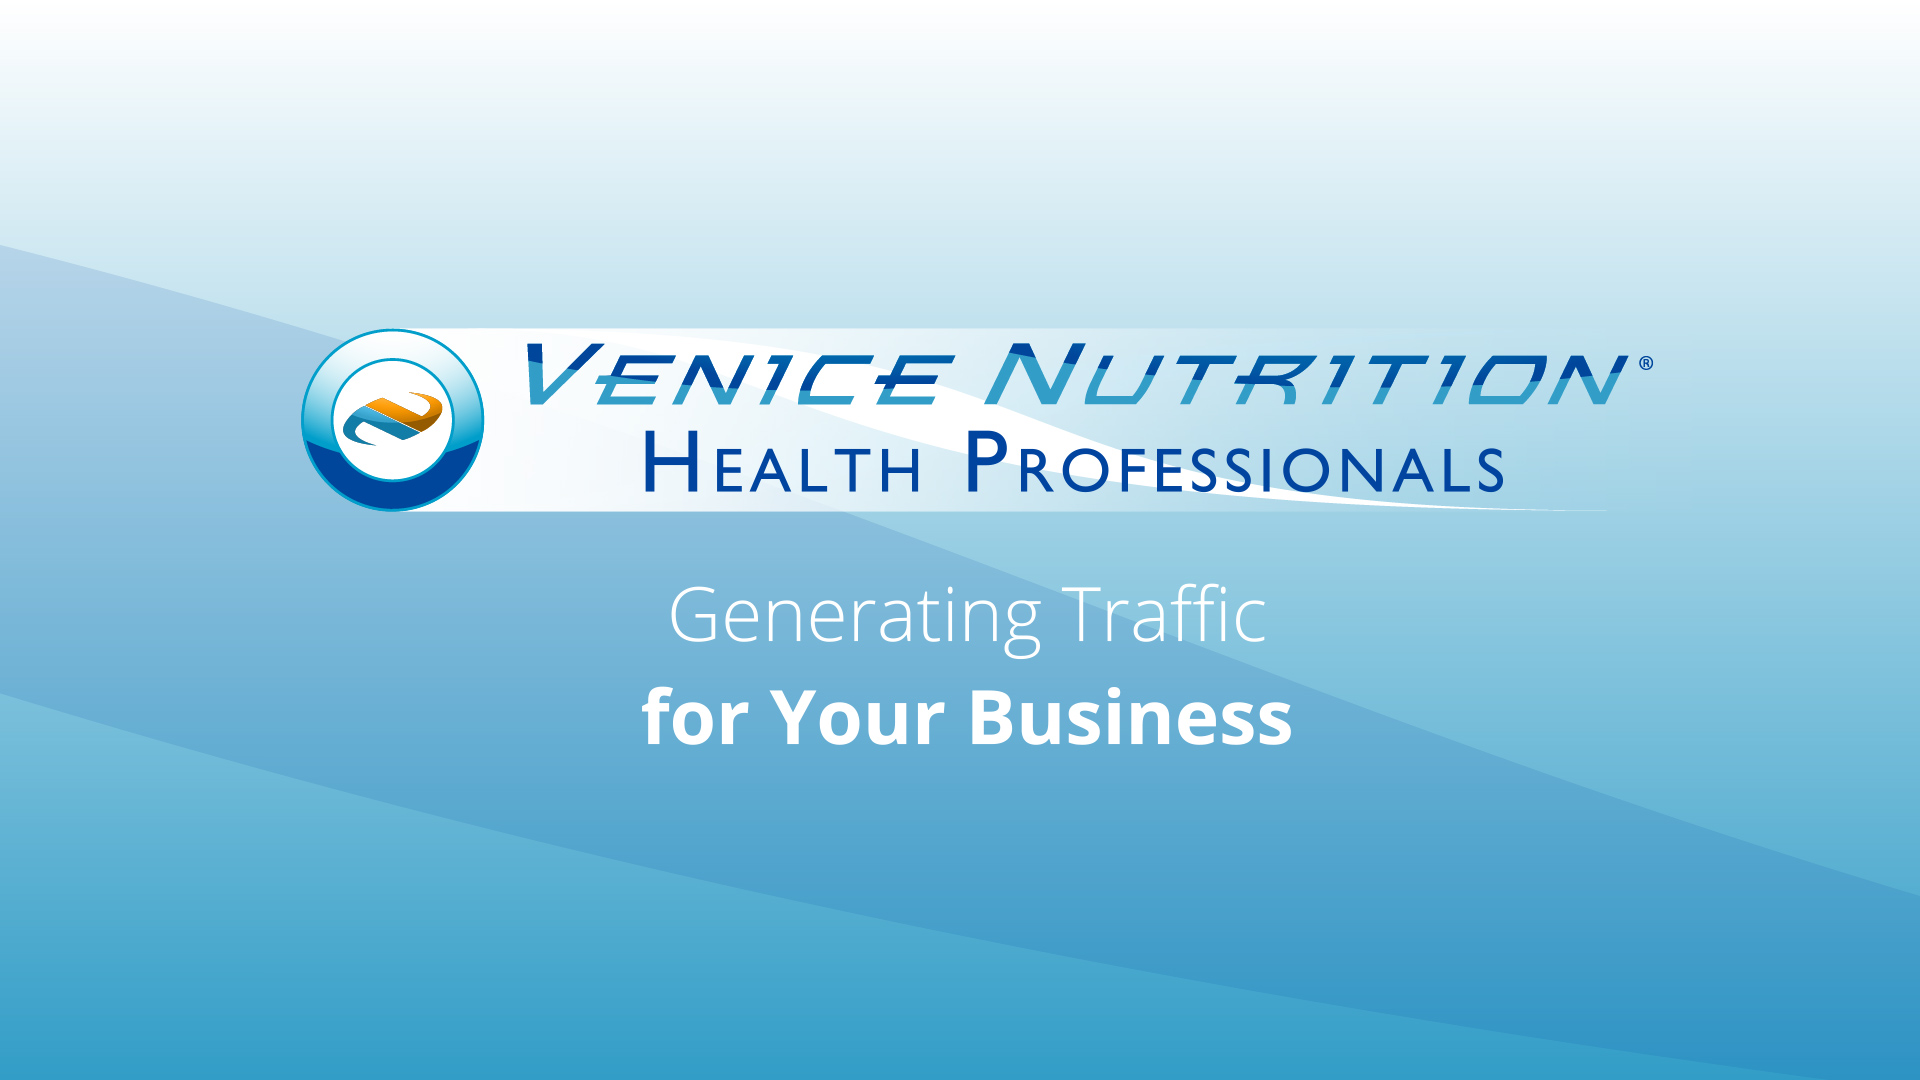 Nutrition Coach Video Generating Traffic for Your Business